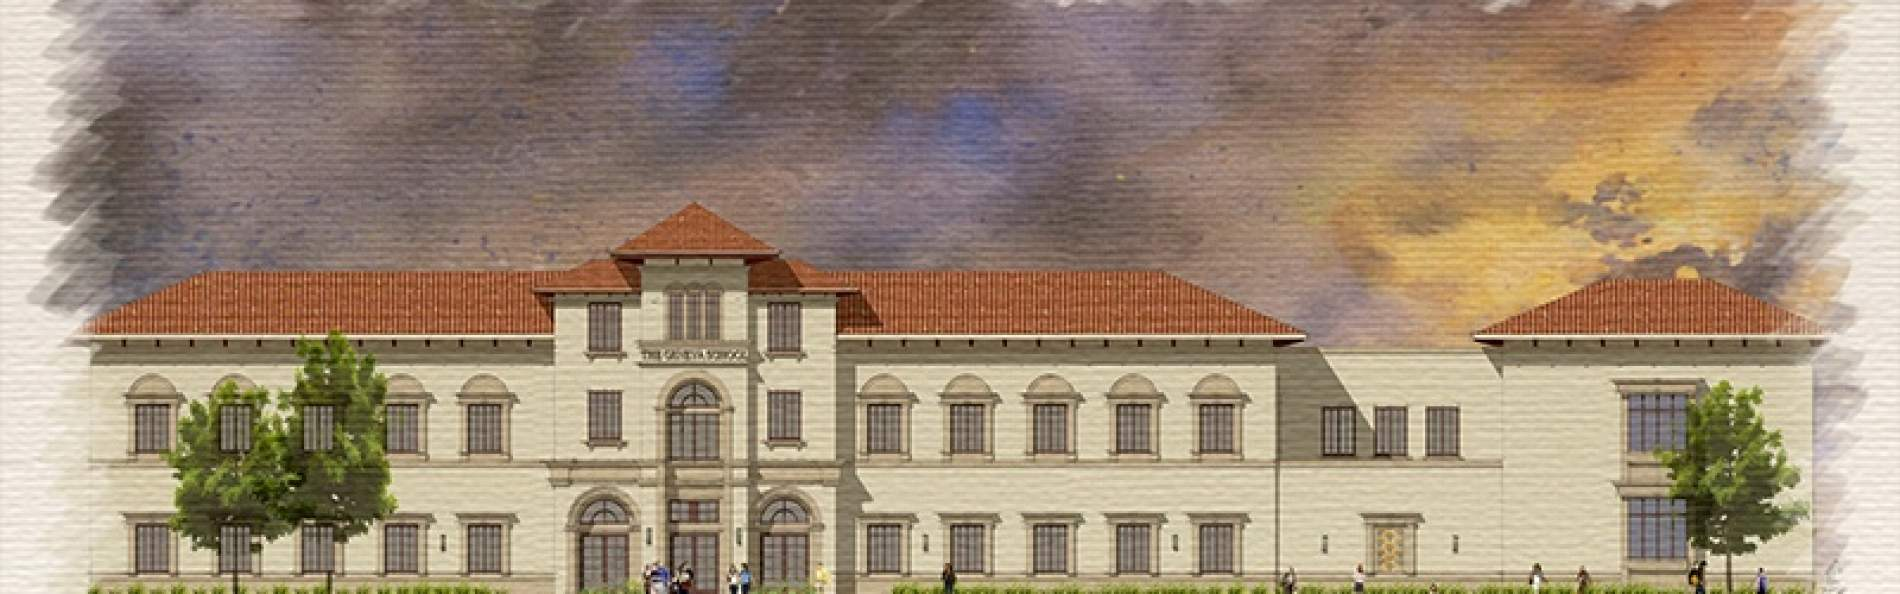 Clancy & Theys renderings of The Geneva School